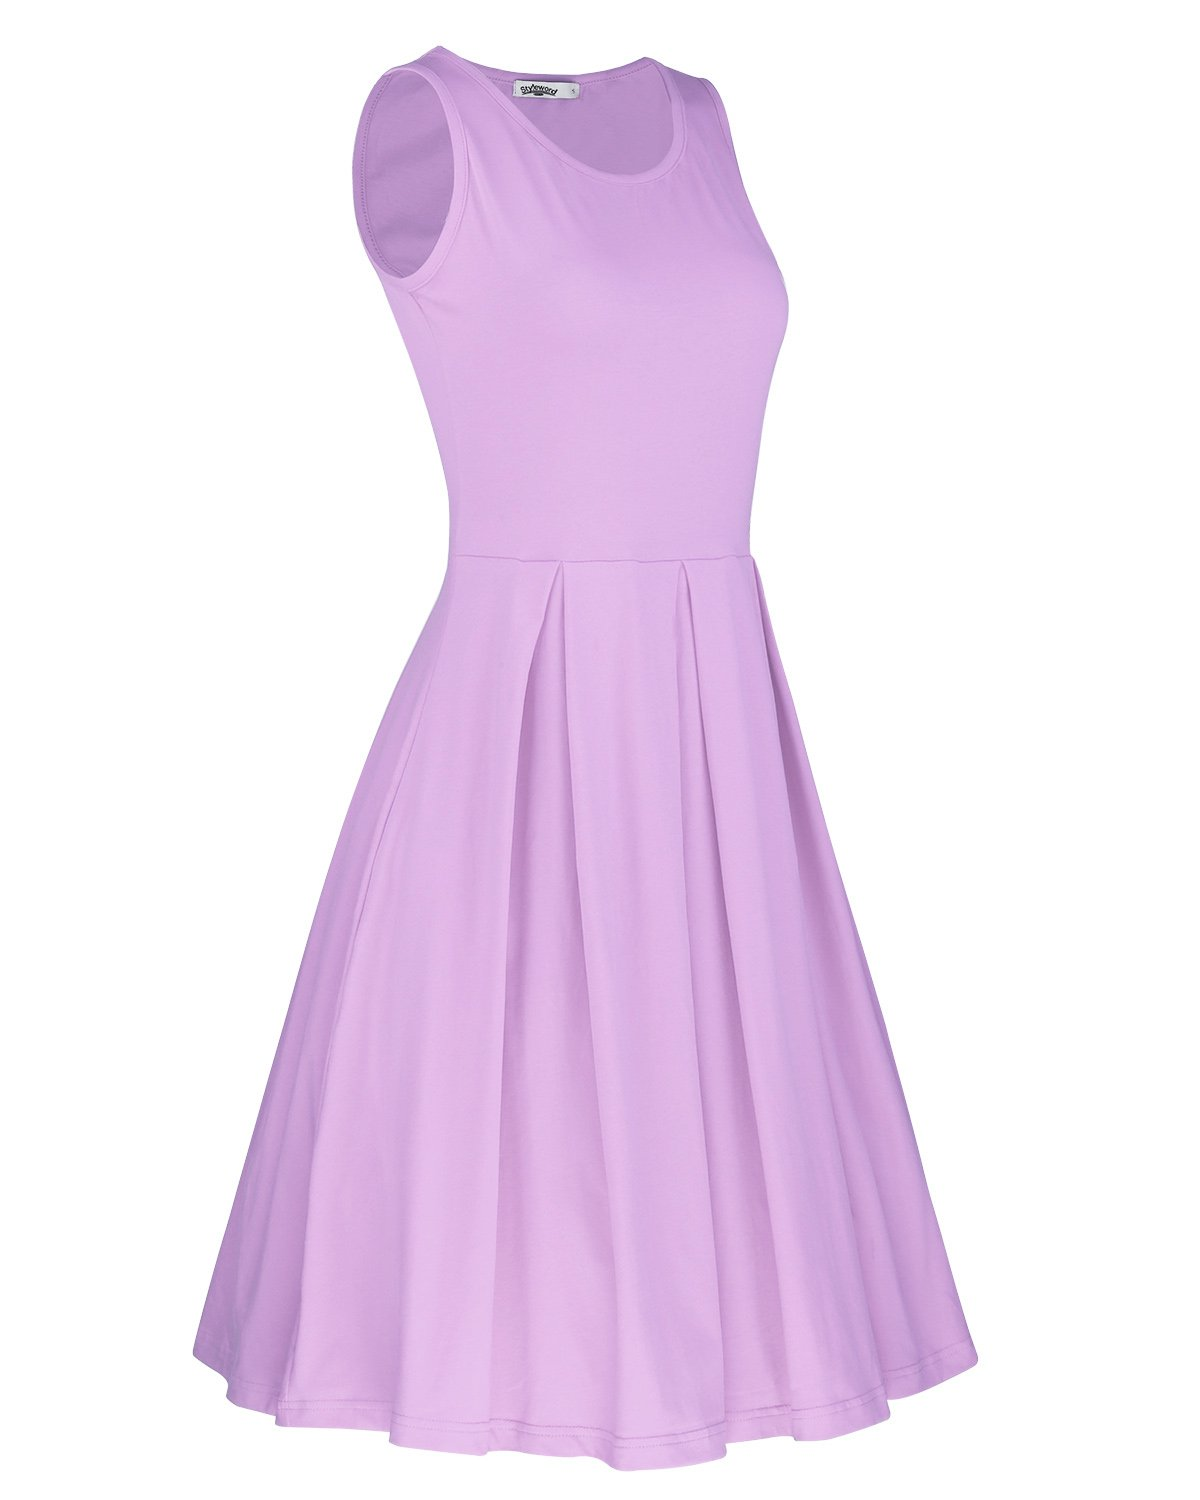 STYLEWORD Women's Sleeveless Casual Cotton Flare Dress(Lavender,L) by STYLEWORD (Image #2)